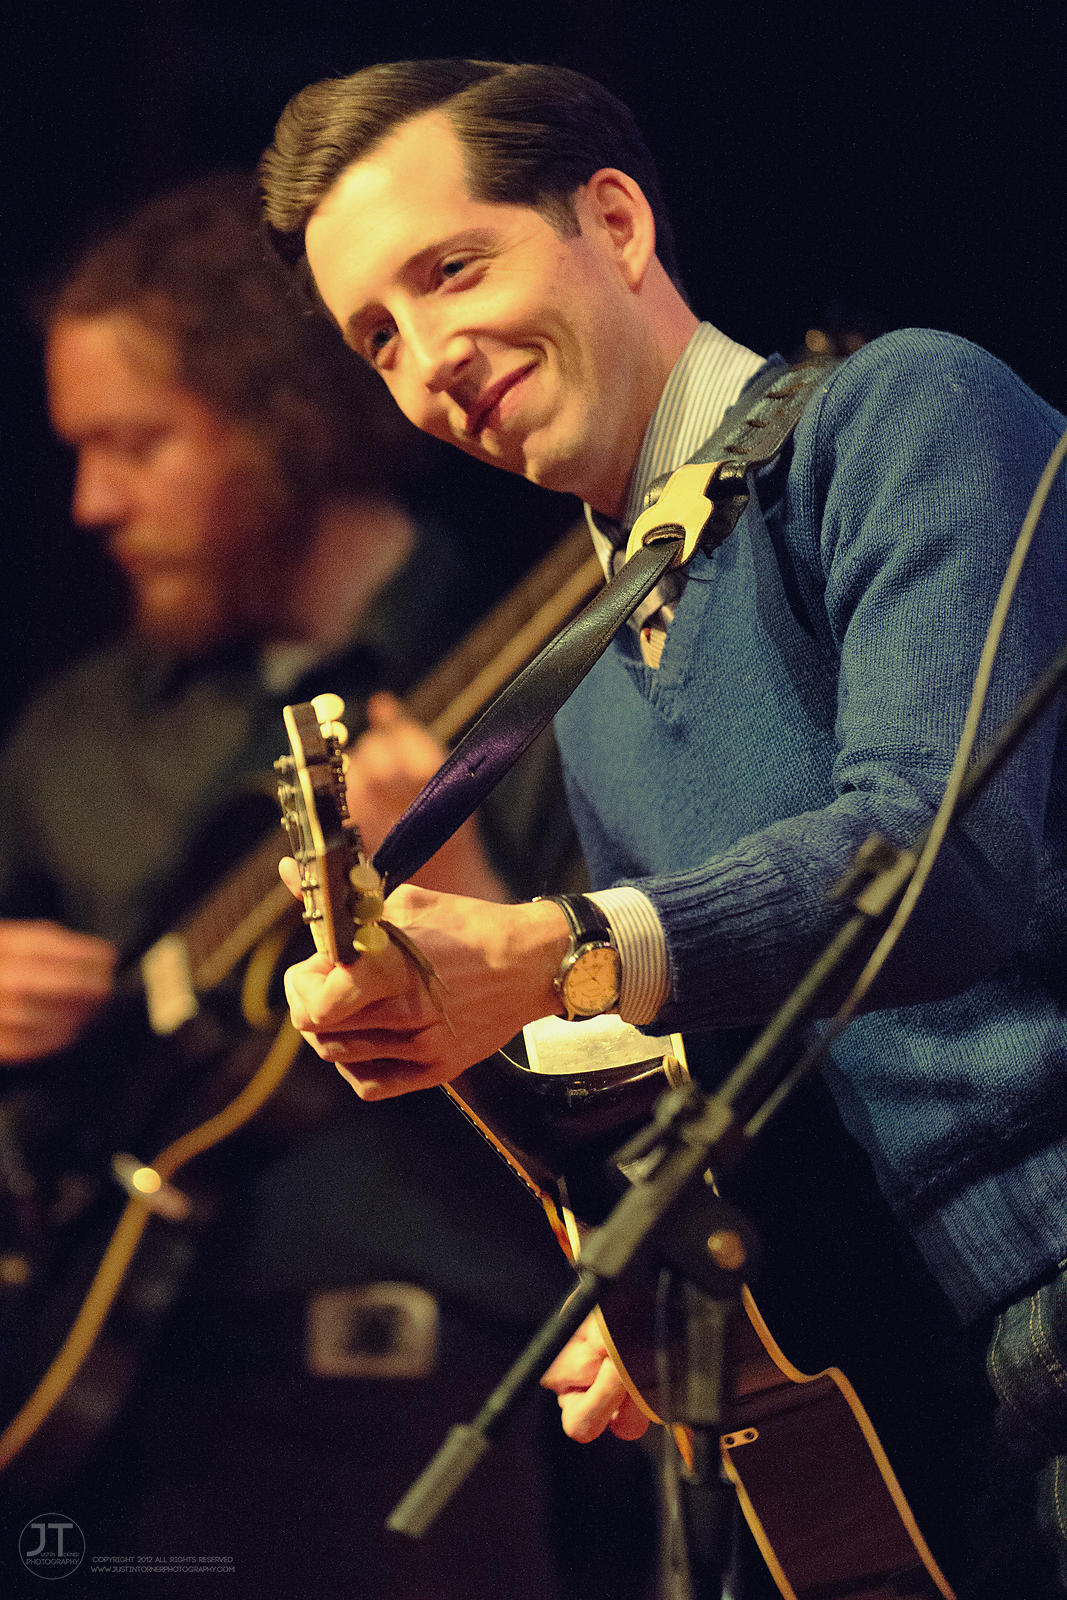 Hoopla - Pokey LaFarge, CSPS, November 23, 2014 photos